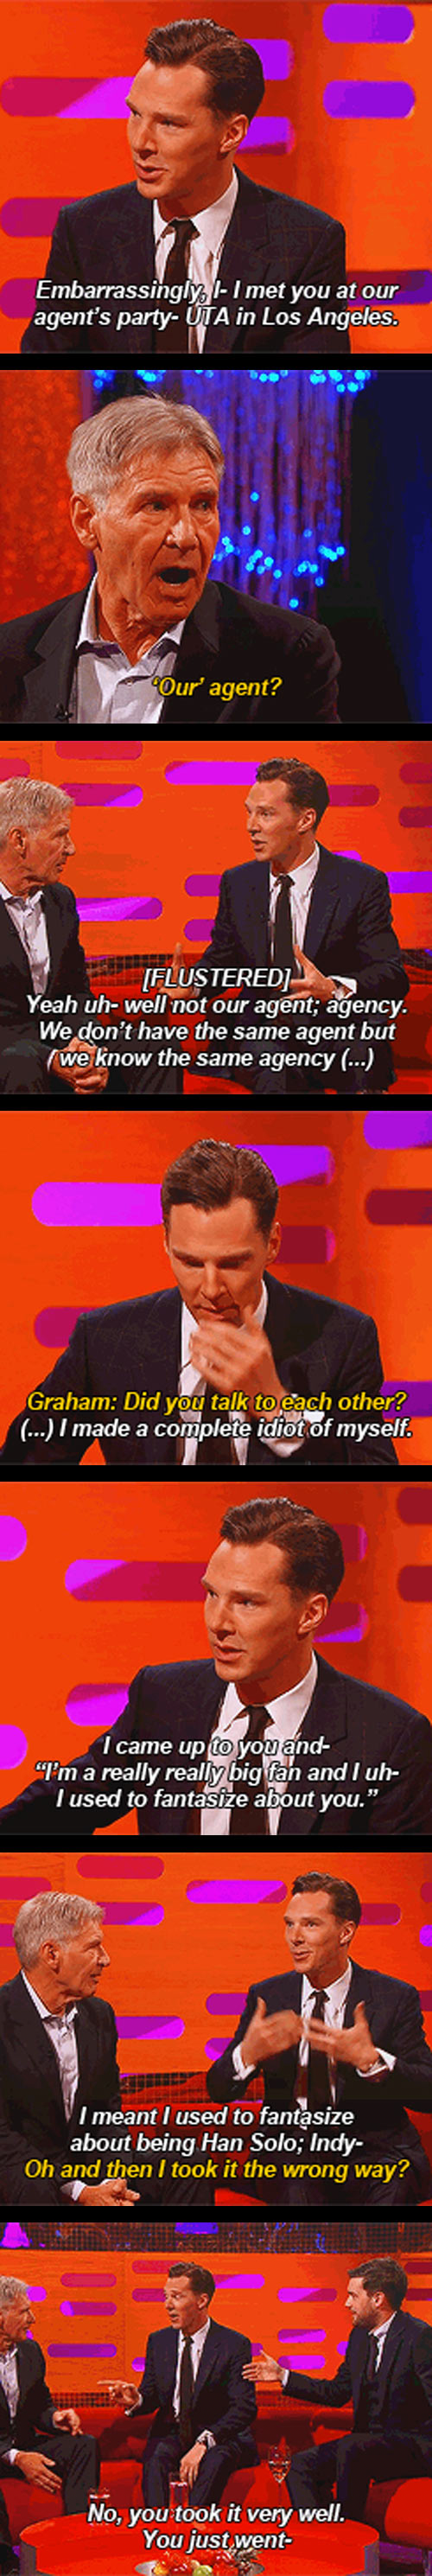 Benedict Cumberbatch is a huge fan of Harrison Ford...